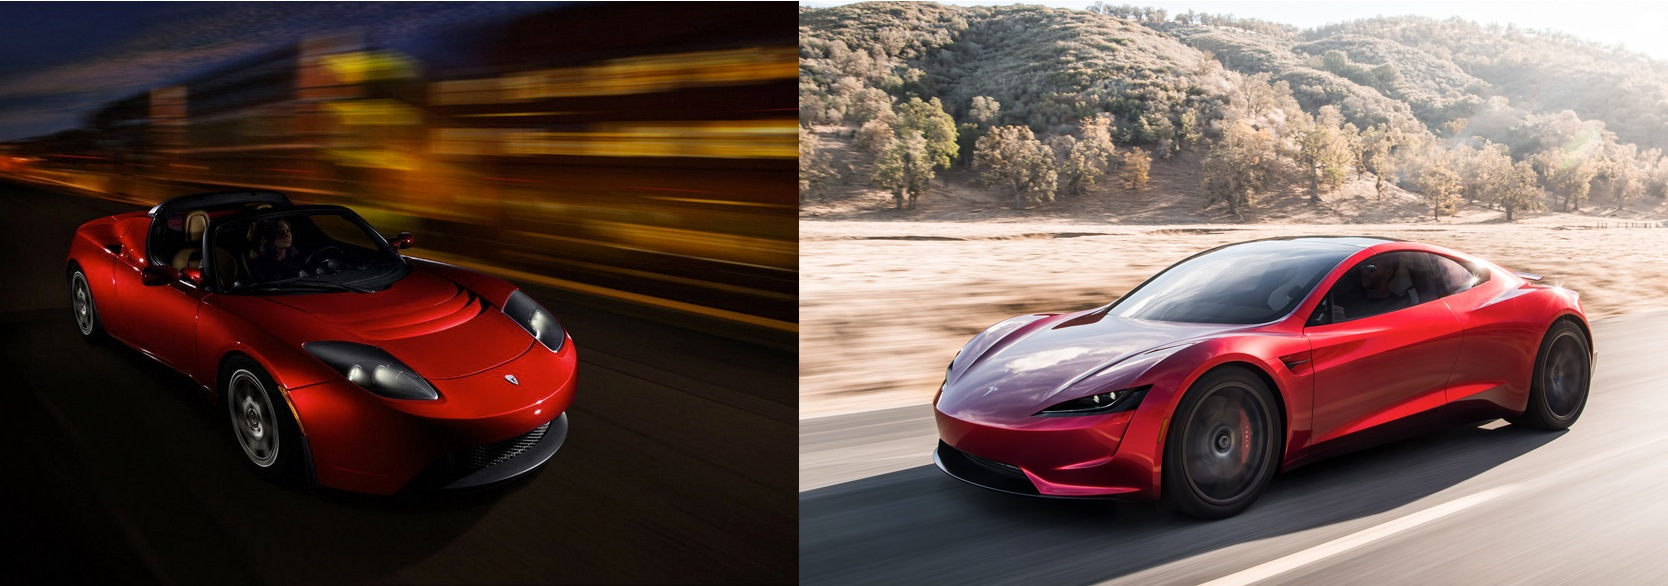 quick comparo: tesla roadster - new vs. old pictures, photos